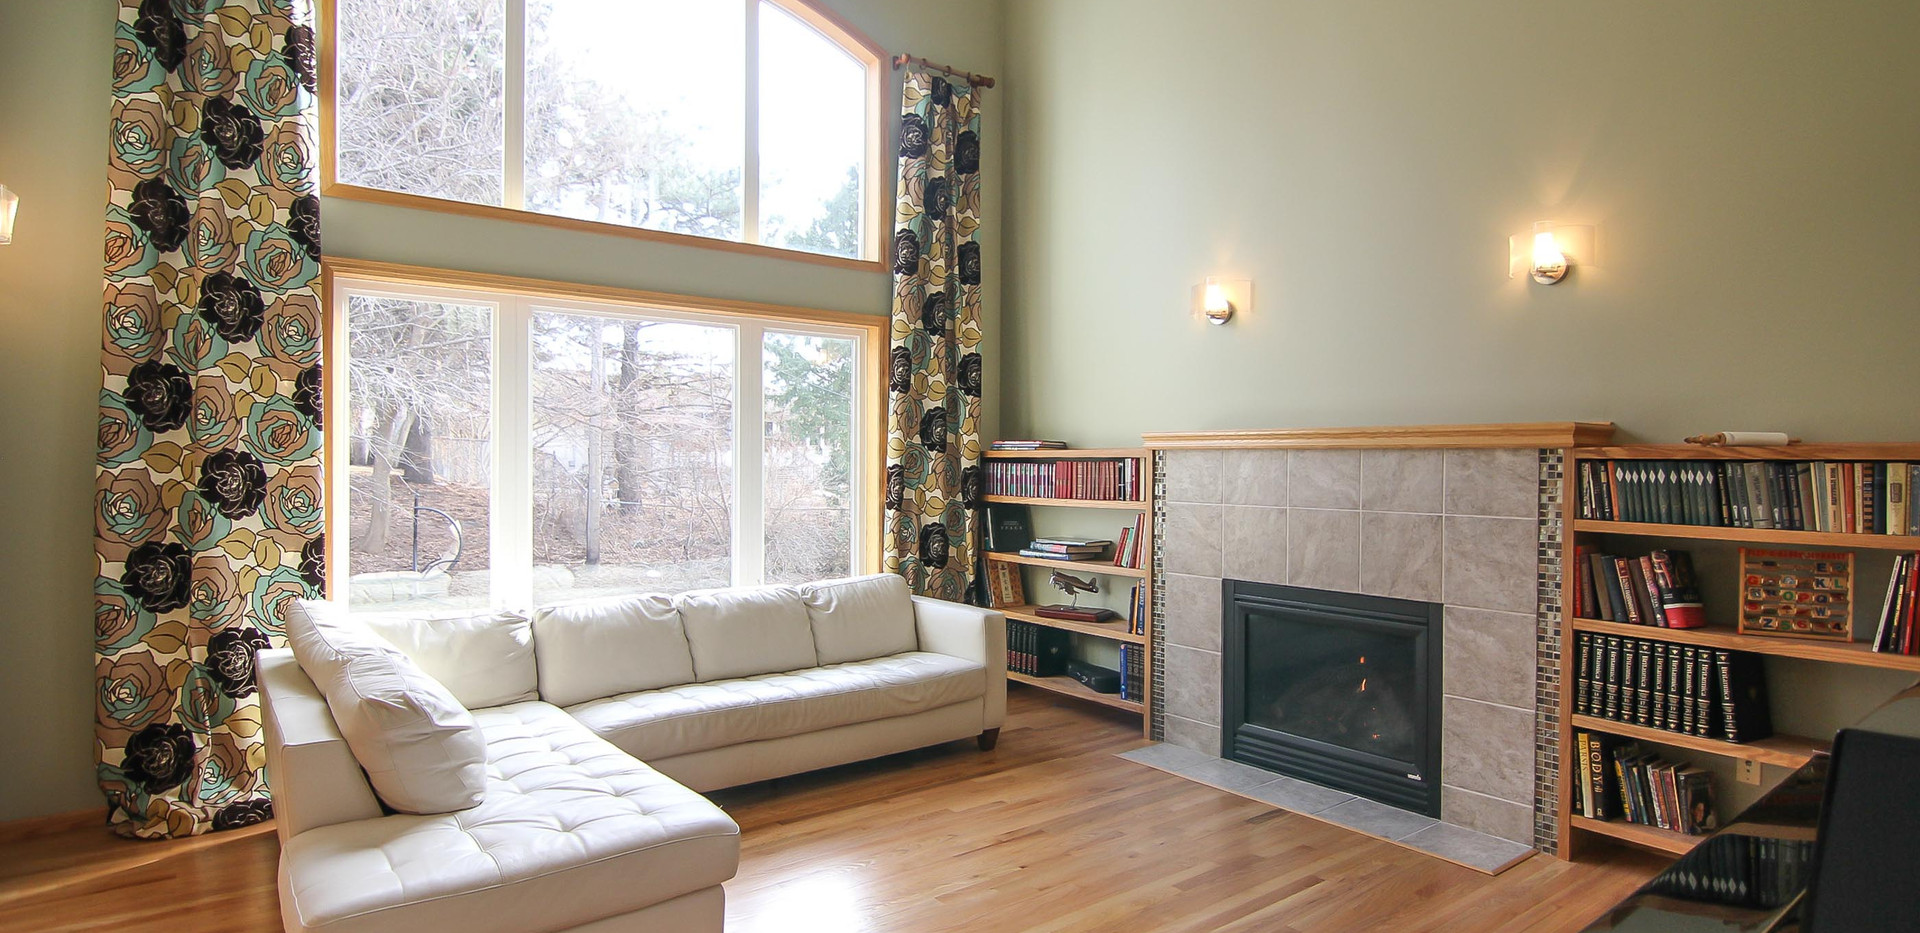 Living Room and Fireplace After